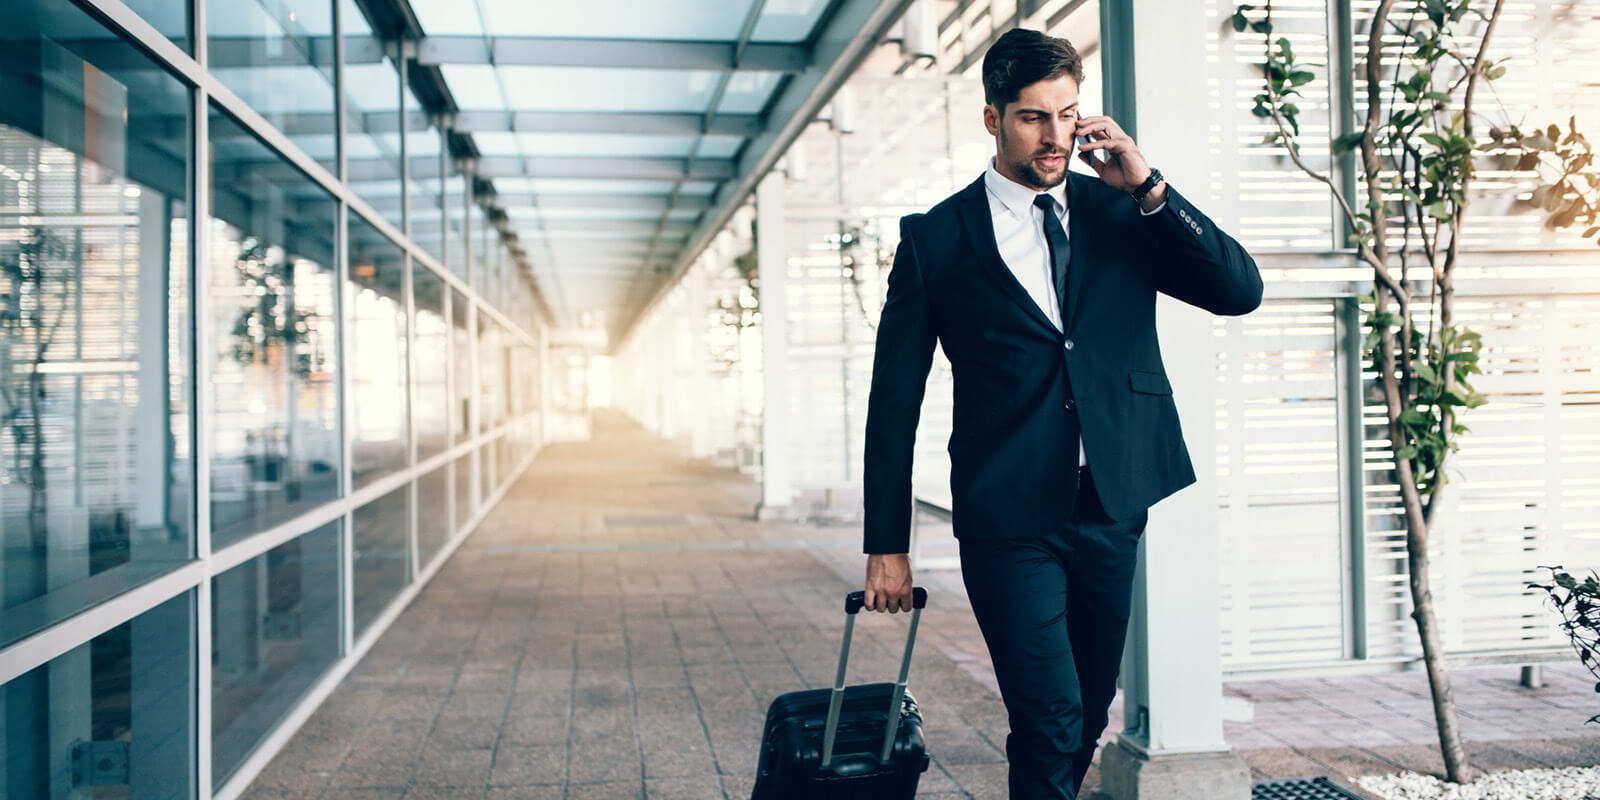 Business Travel Safety Tips: 7 Things You Should Be Doing